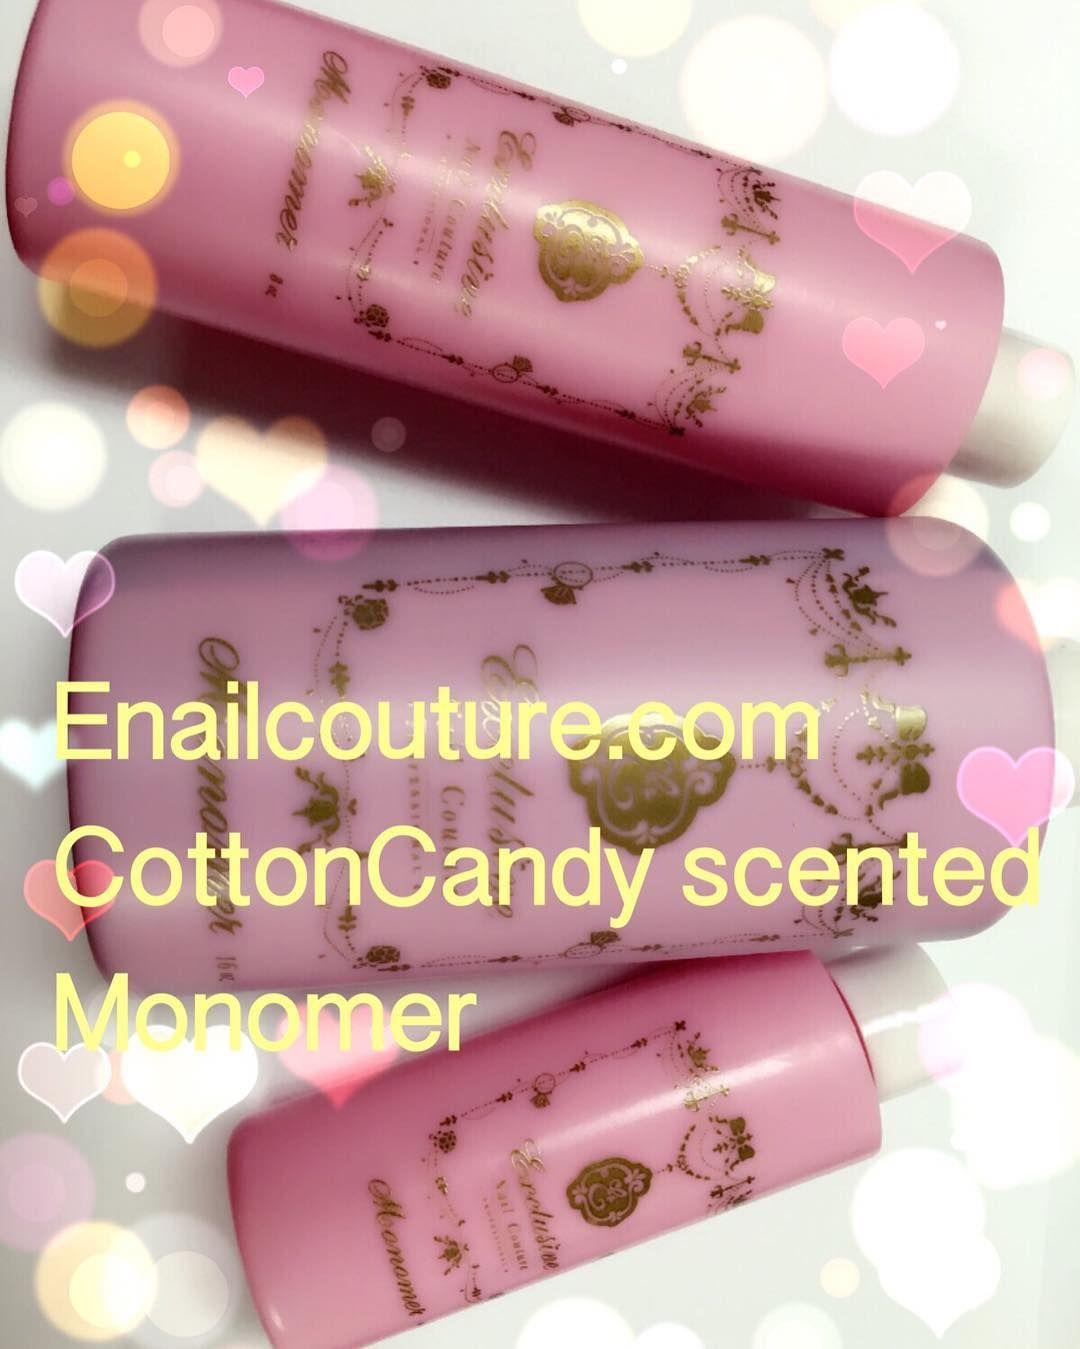 Enailcouture.com new cotton candy scented monomer ! On sale for a limited time ! $24.99 for 16oz! Free shipping in the USA on orders over 99! Enailcouture.com cotton candy scented monomer is flying of the shelf !!! Enailcouture.com gel polish in 126 colors by kingofnail